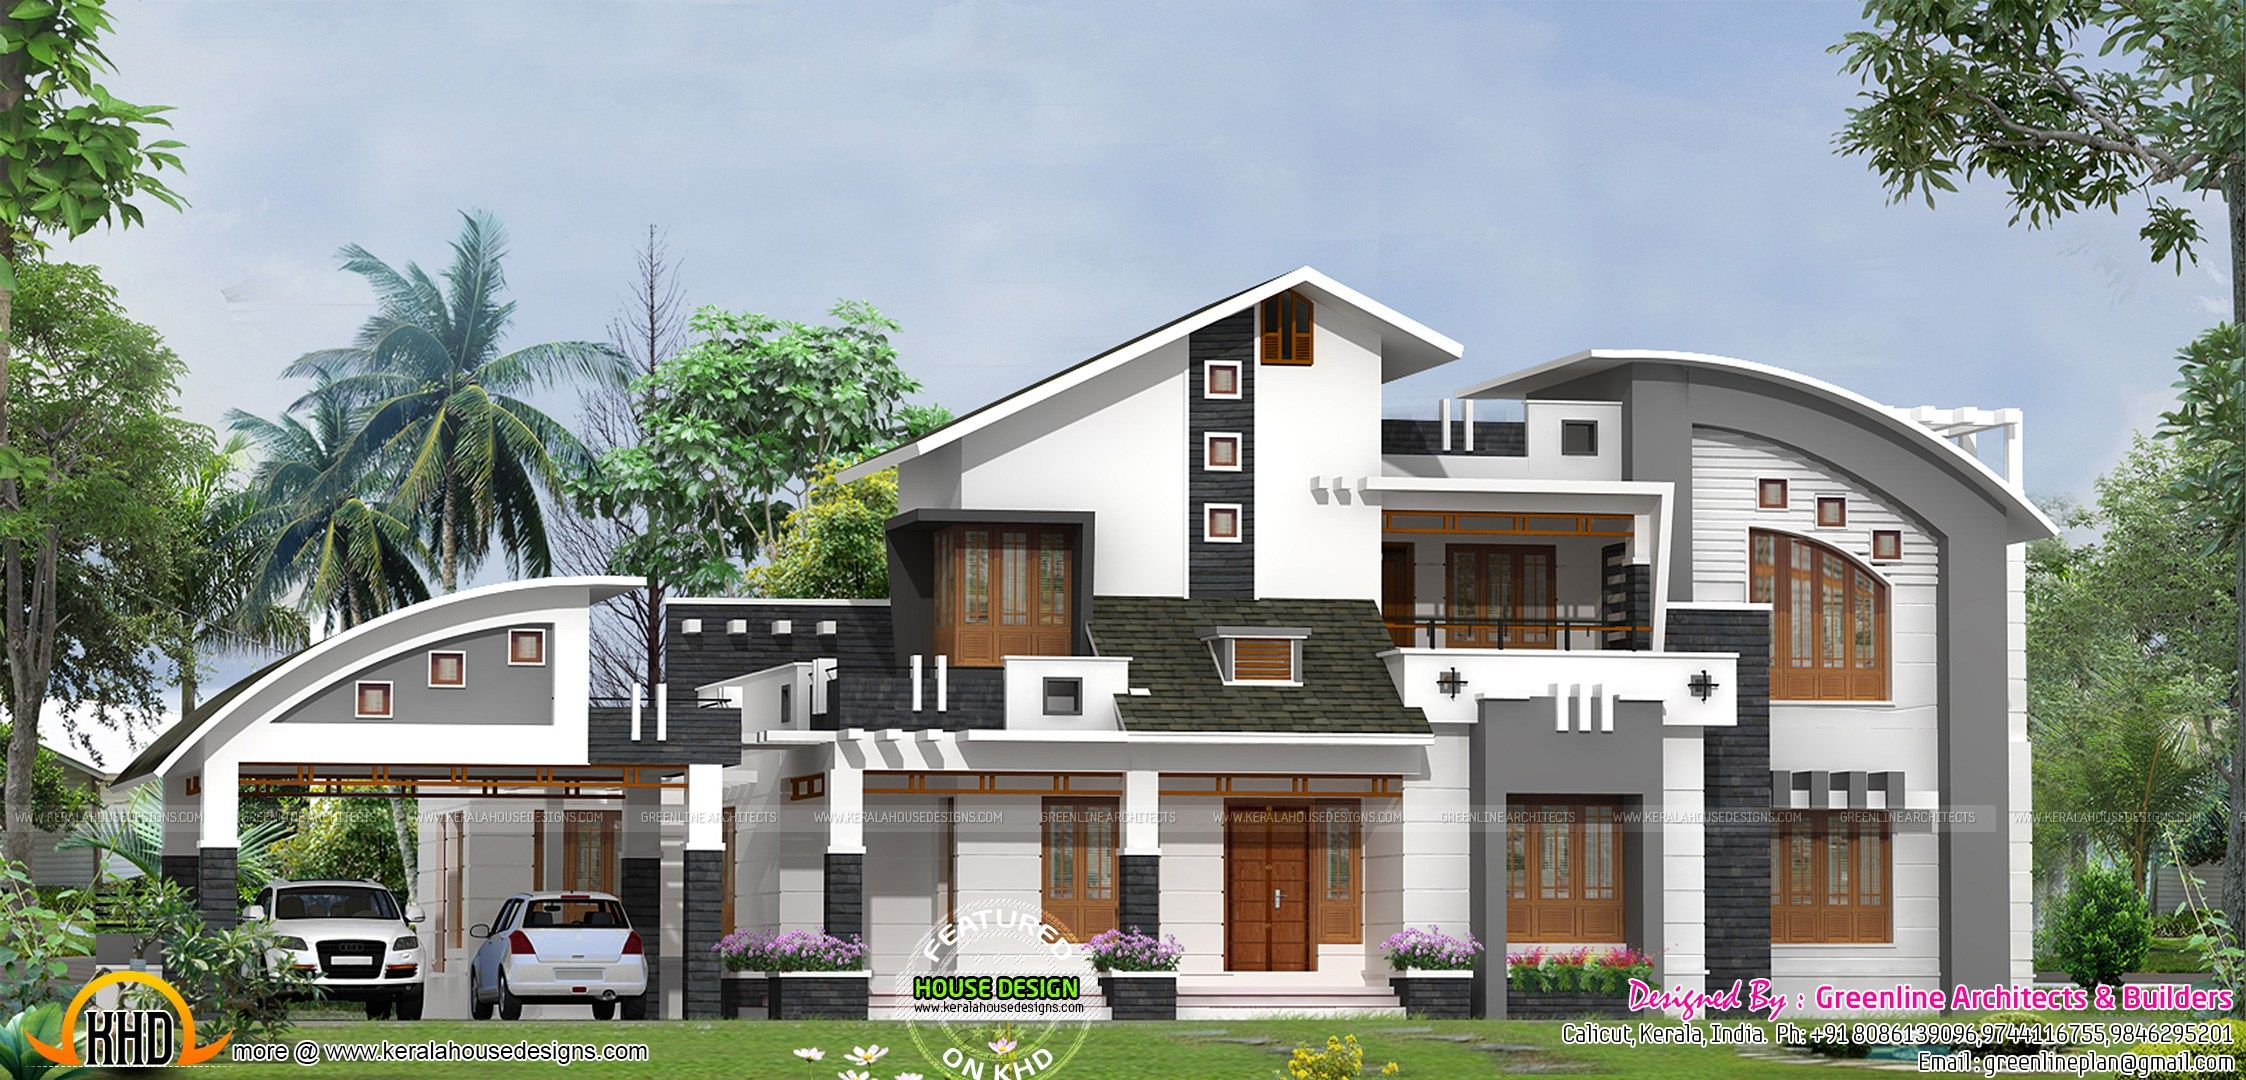 Contemporary Mix Home Plan Kerala Home Design Floor Plans Design Studio Designer Sudheesh Ellat Kerala House Design Unique House Design Home Design Floor Plans